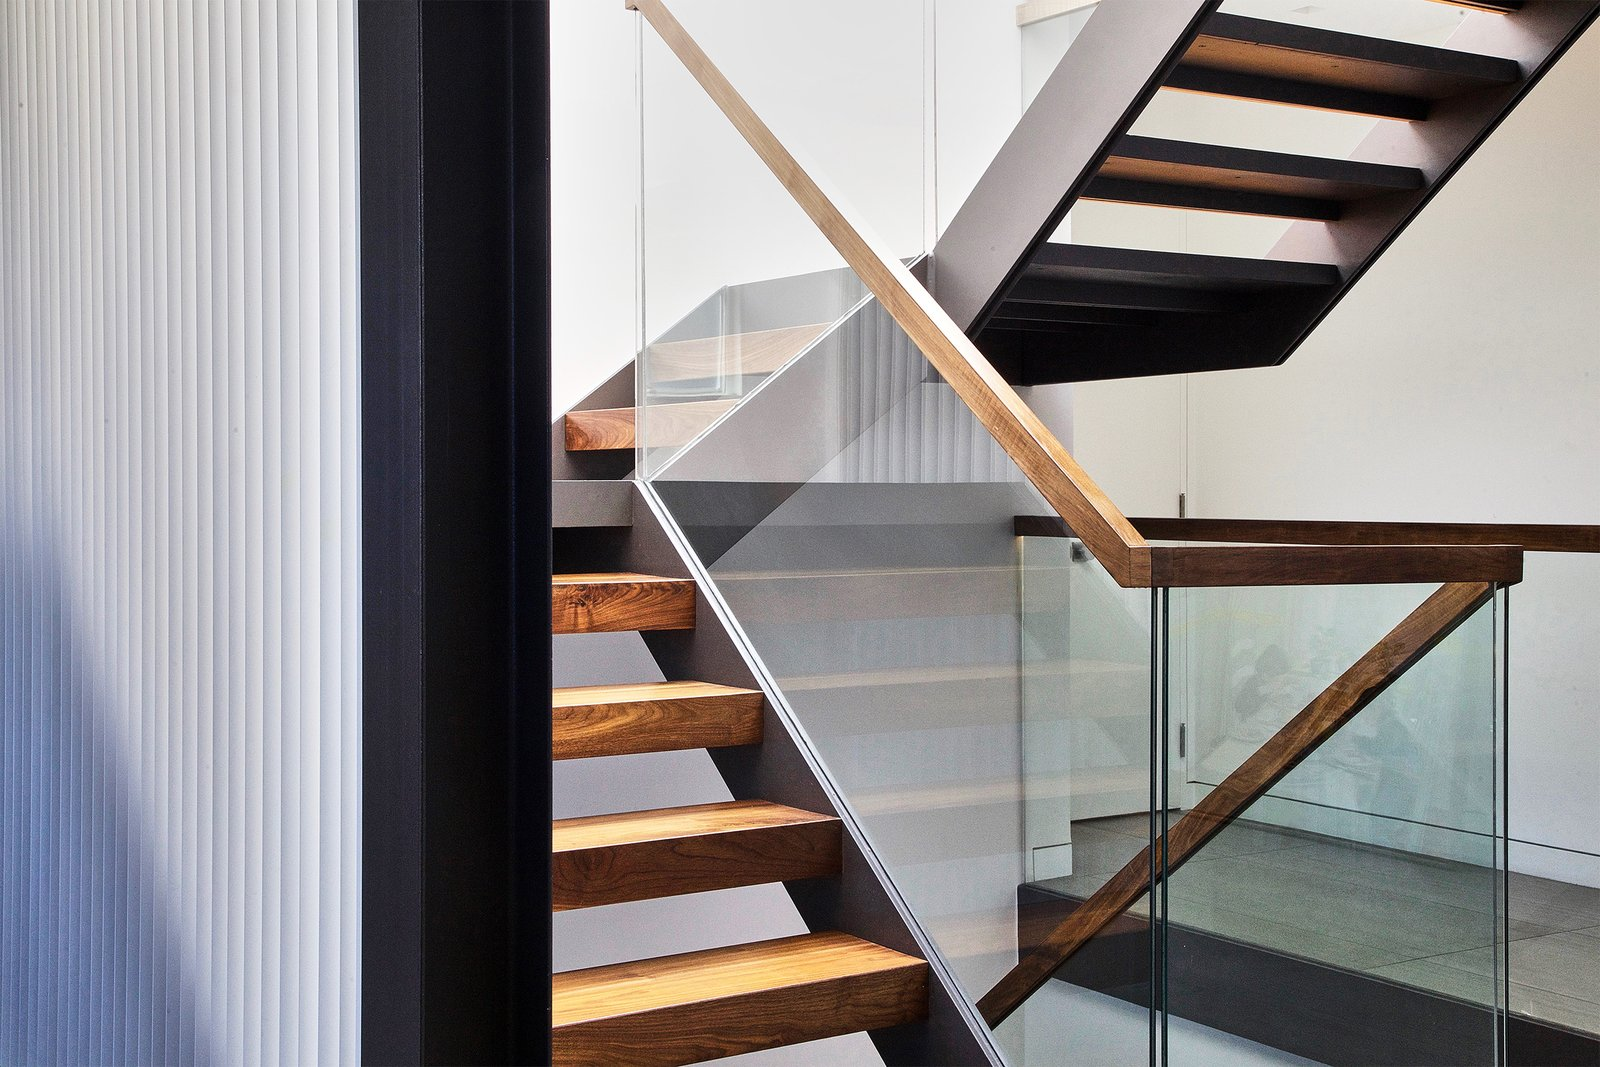 Walnut and Steel stair connecting all floors Tagged: Staircase, Wood Tread, Wood Railing, and Glass Railing.  Lyon Residence by Diego Pacheco Design Practice